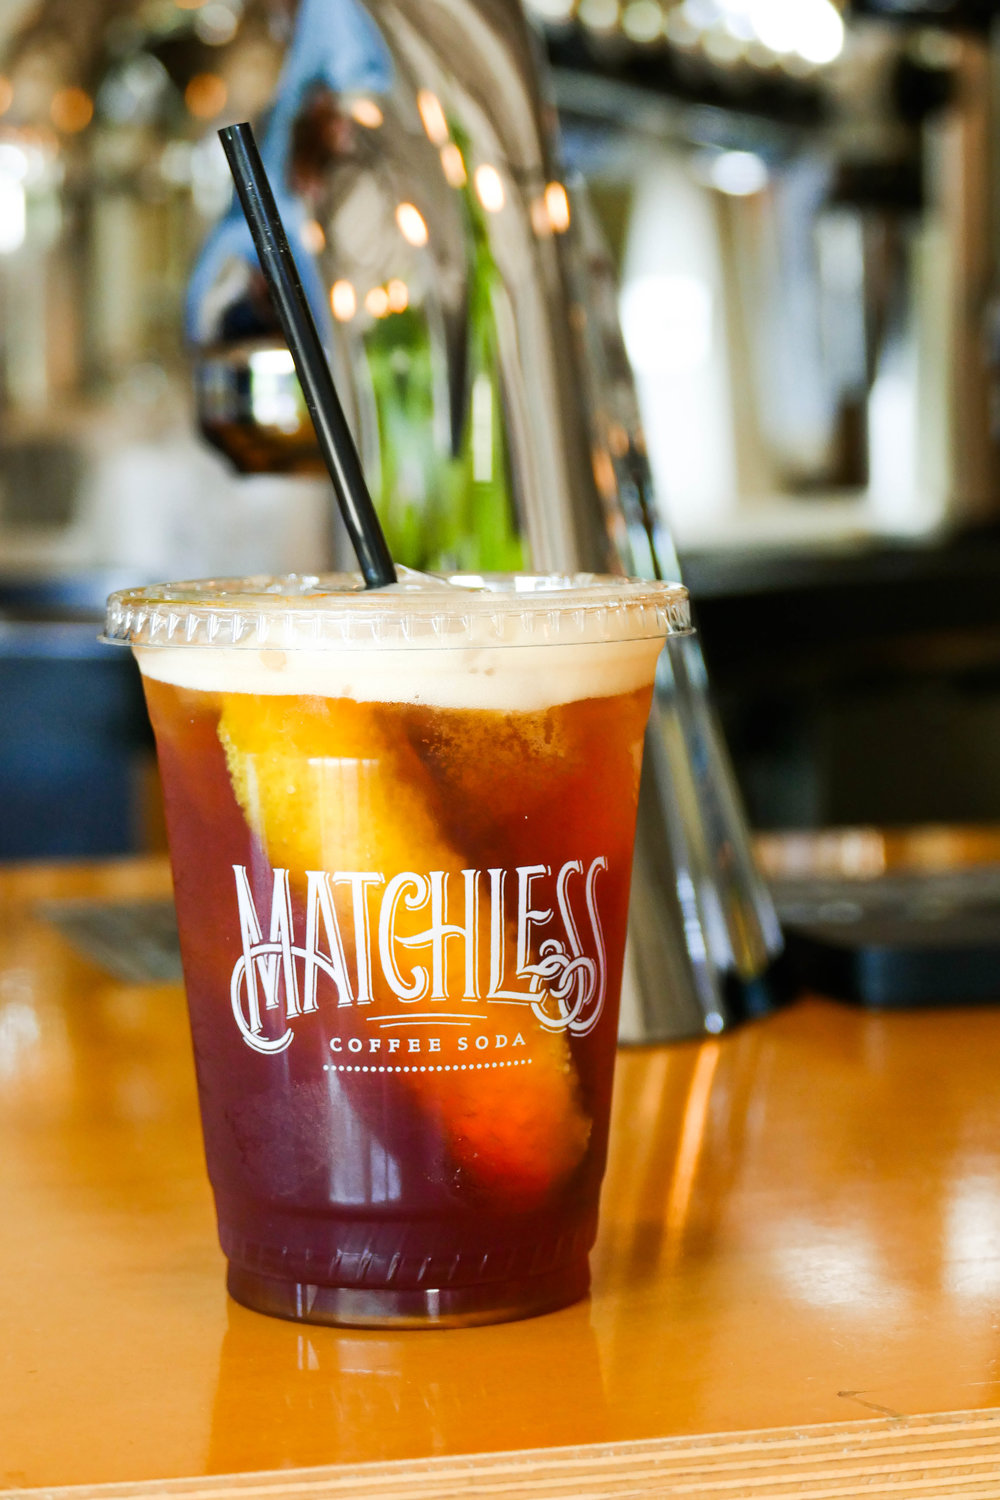 In 2012 Nathanael Mehrens had an idea that would change the face of Nashville specialty coffee forever: coffee soda. A cold, carbonated coffee drink that's subtly flavored with orange: slightly sweet and so refreshing. It quickly became a local hit and Mehrens, along with his partners Jamie Cunningham and Sean Stewart approached Ben Bredesen (Owner of Fat Bottom Brewery) about helping them to turn their coffee soda into a viable brand.  He, along with his partners, invented a way to brew large batches of coffee that maintained the character and terroir of its origin. This means that the taste can vary slightly season by season. During this time, the trio simultaneously opened their own café in germantown called Steadfast Coffee and put their coffee soda creation on tap there. It soon became an award winning local Nashville favorite and one of their top sellers. We are proud to partner with  Matchless  and hope you will enjoy a refreshing cup of coffee soda while shopping.